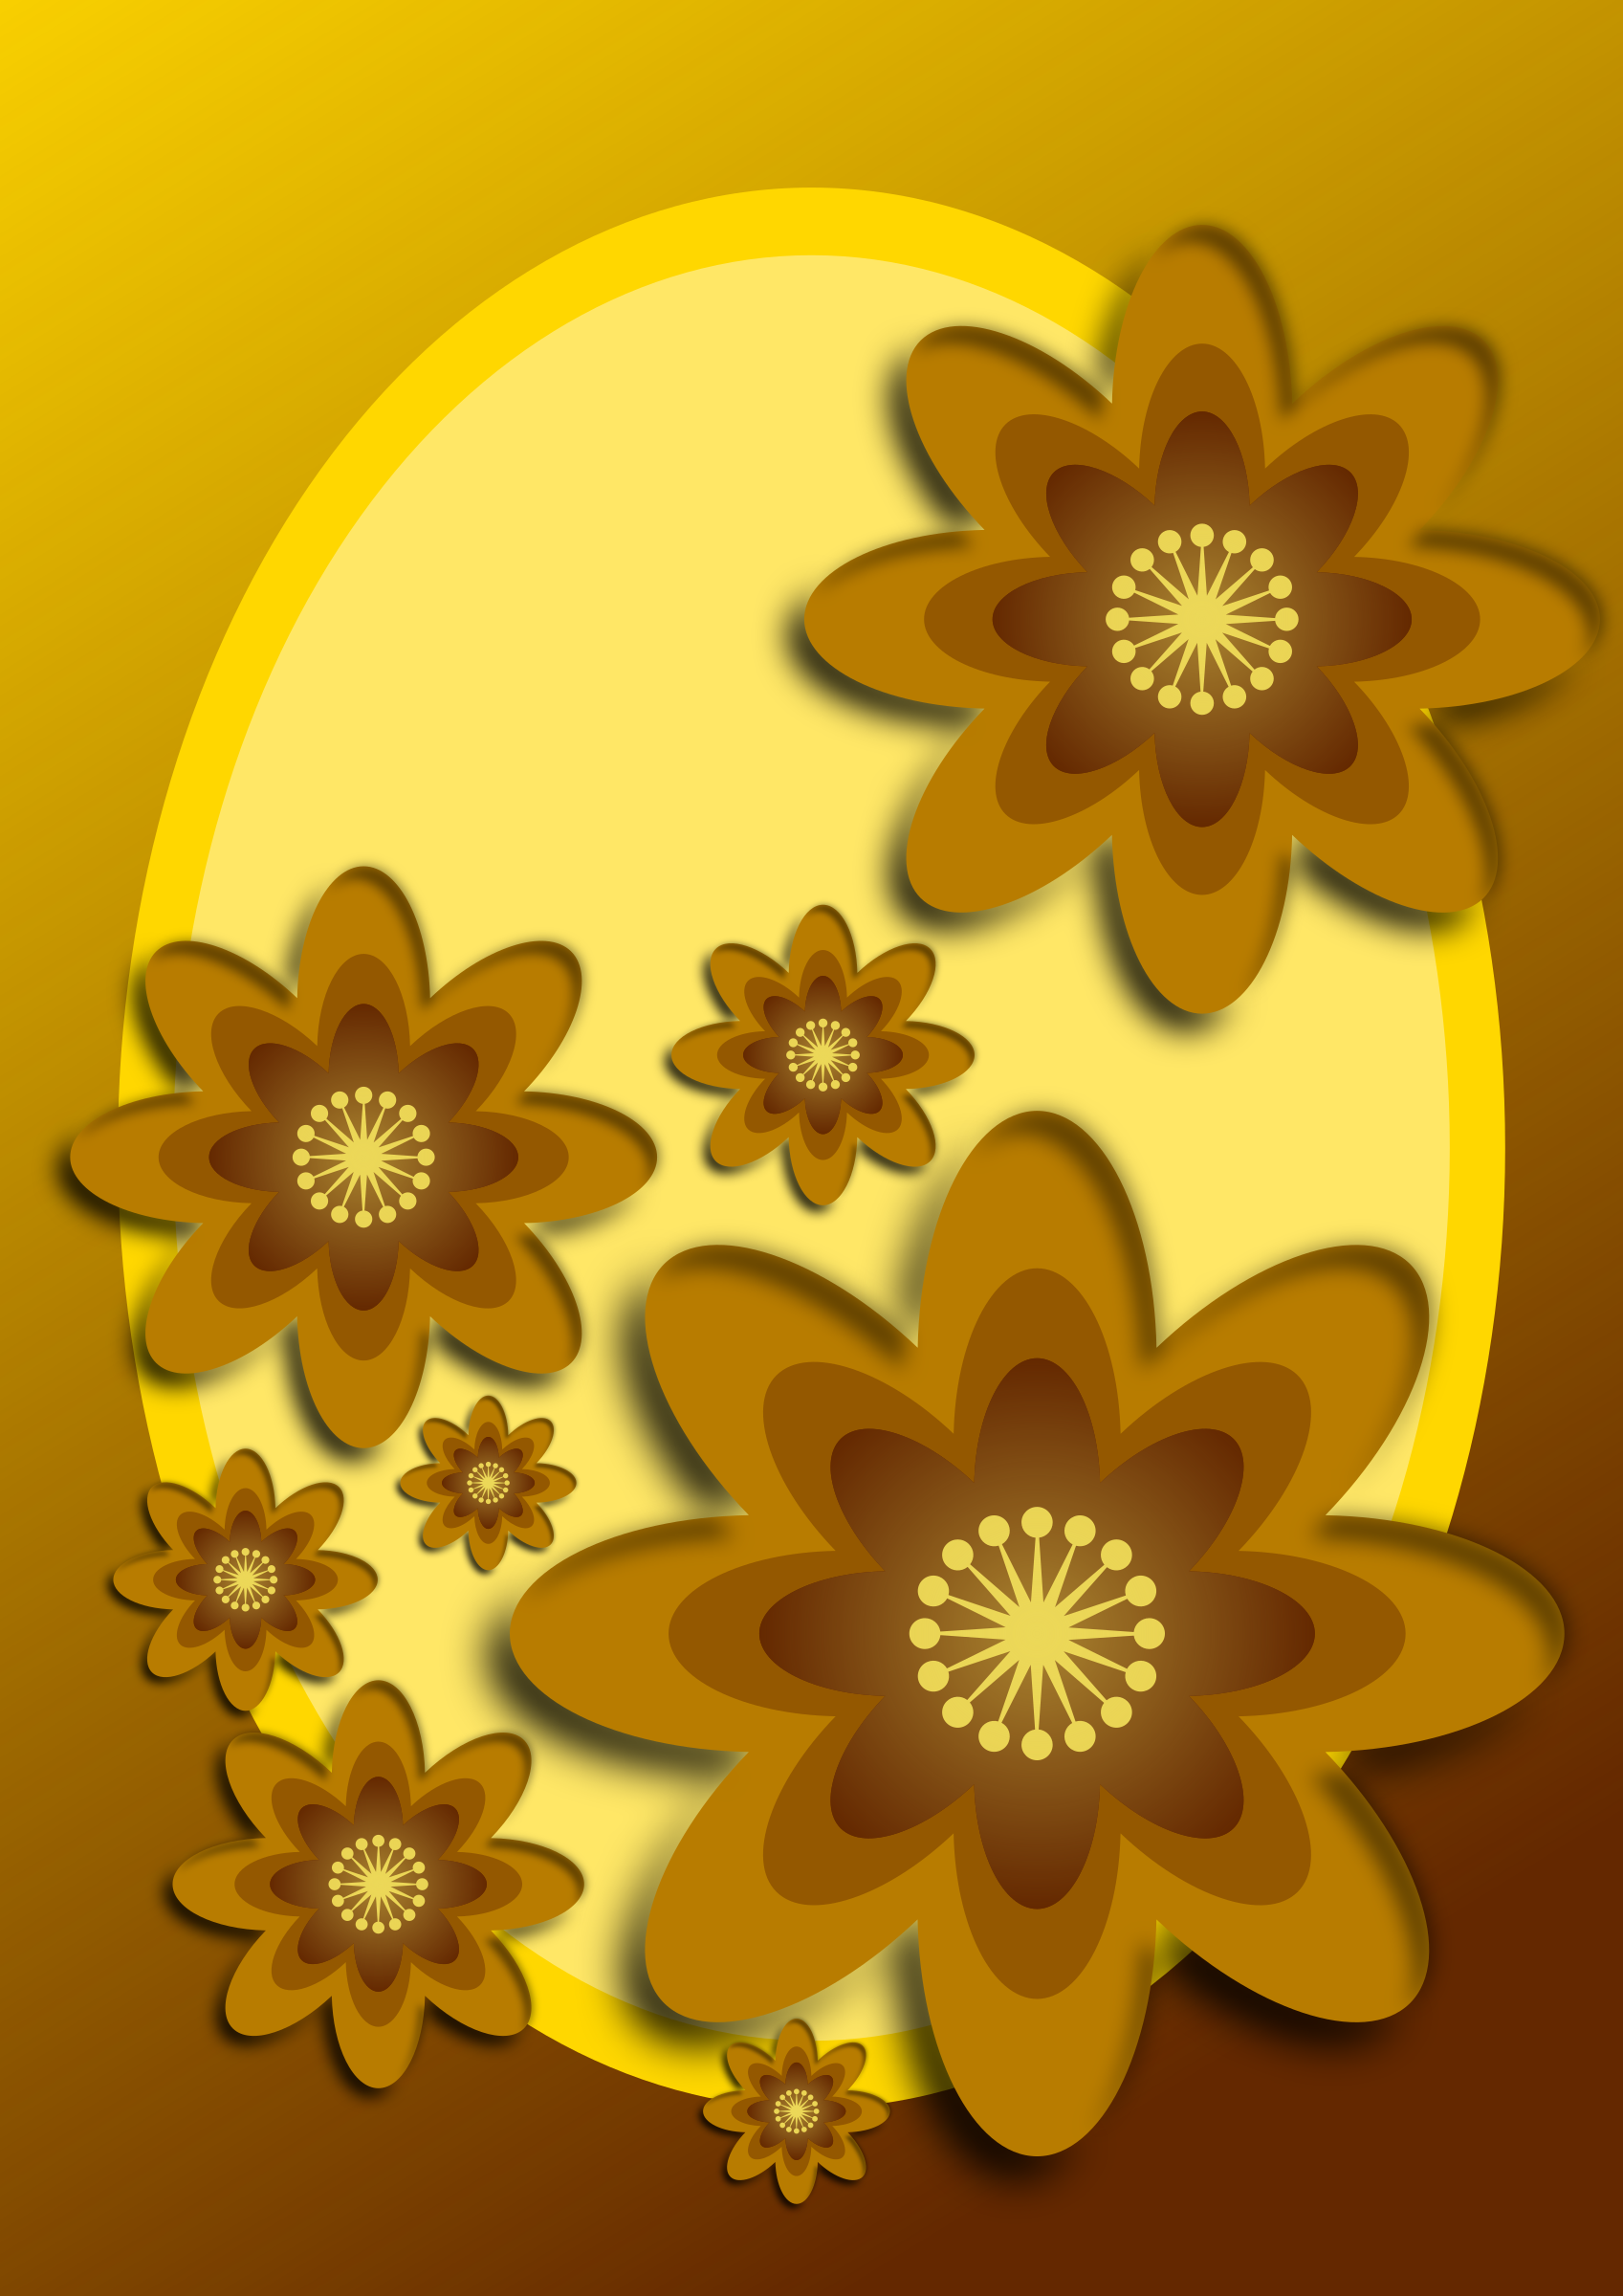 Golden flowers by Almeidah